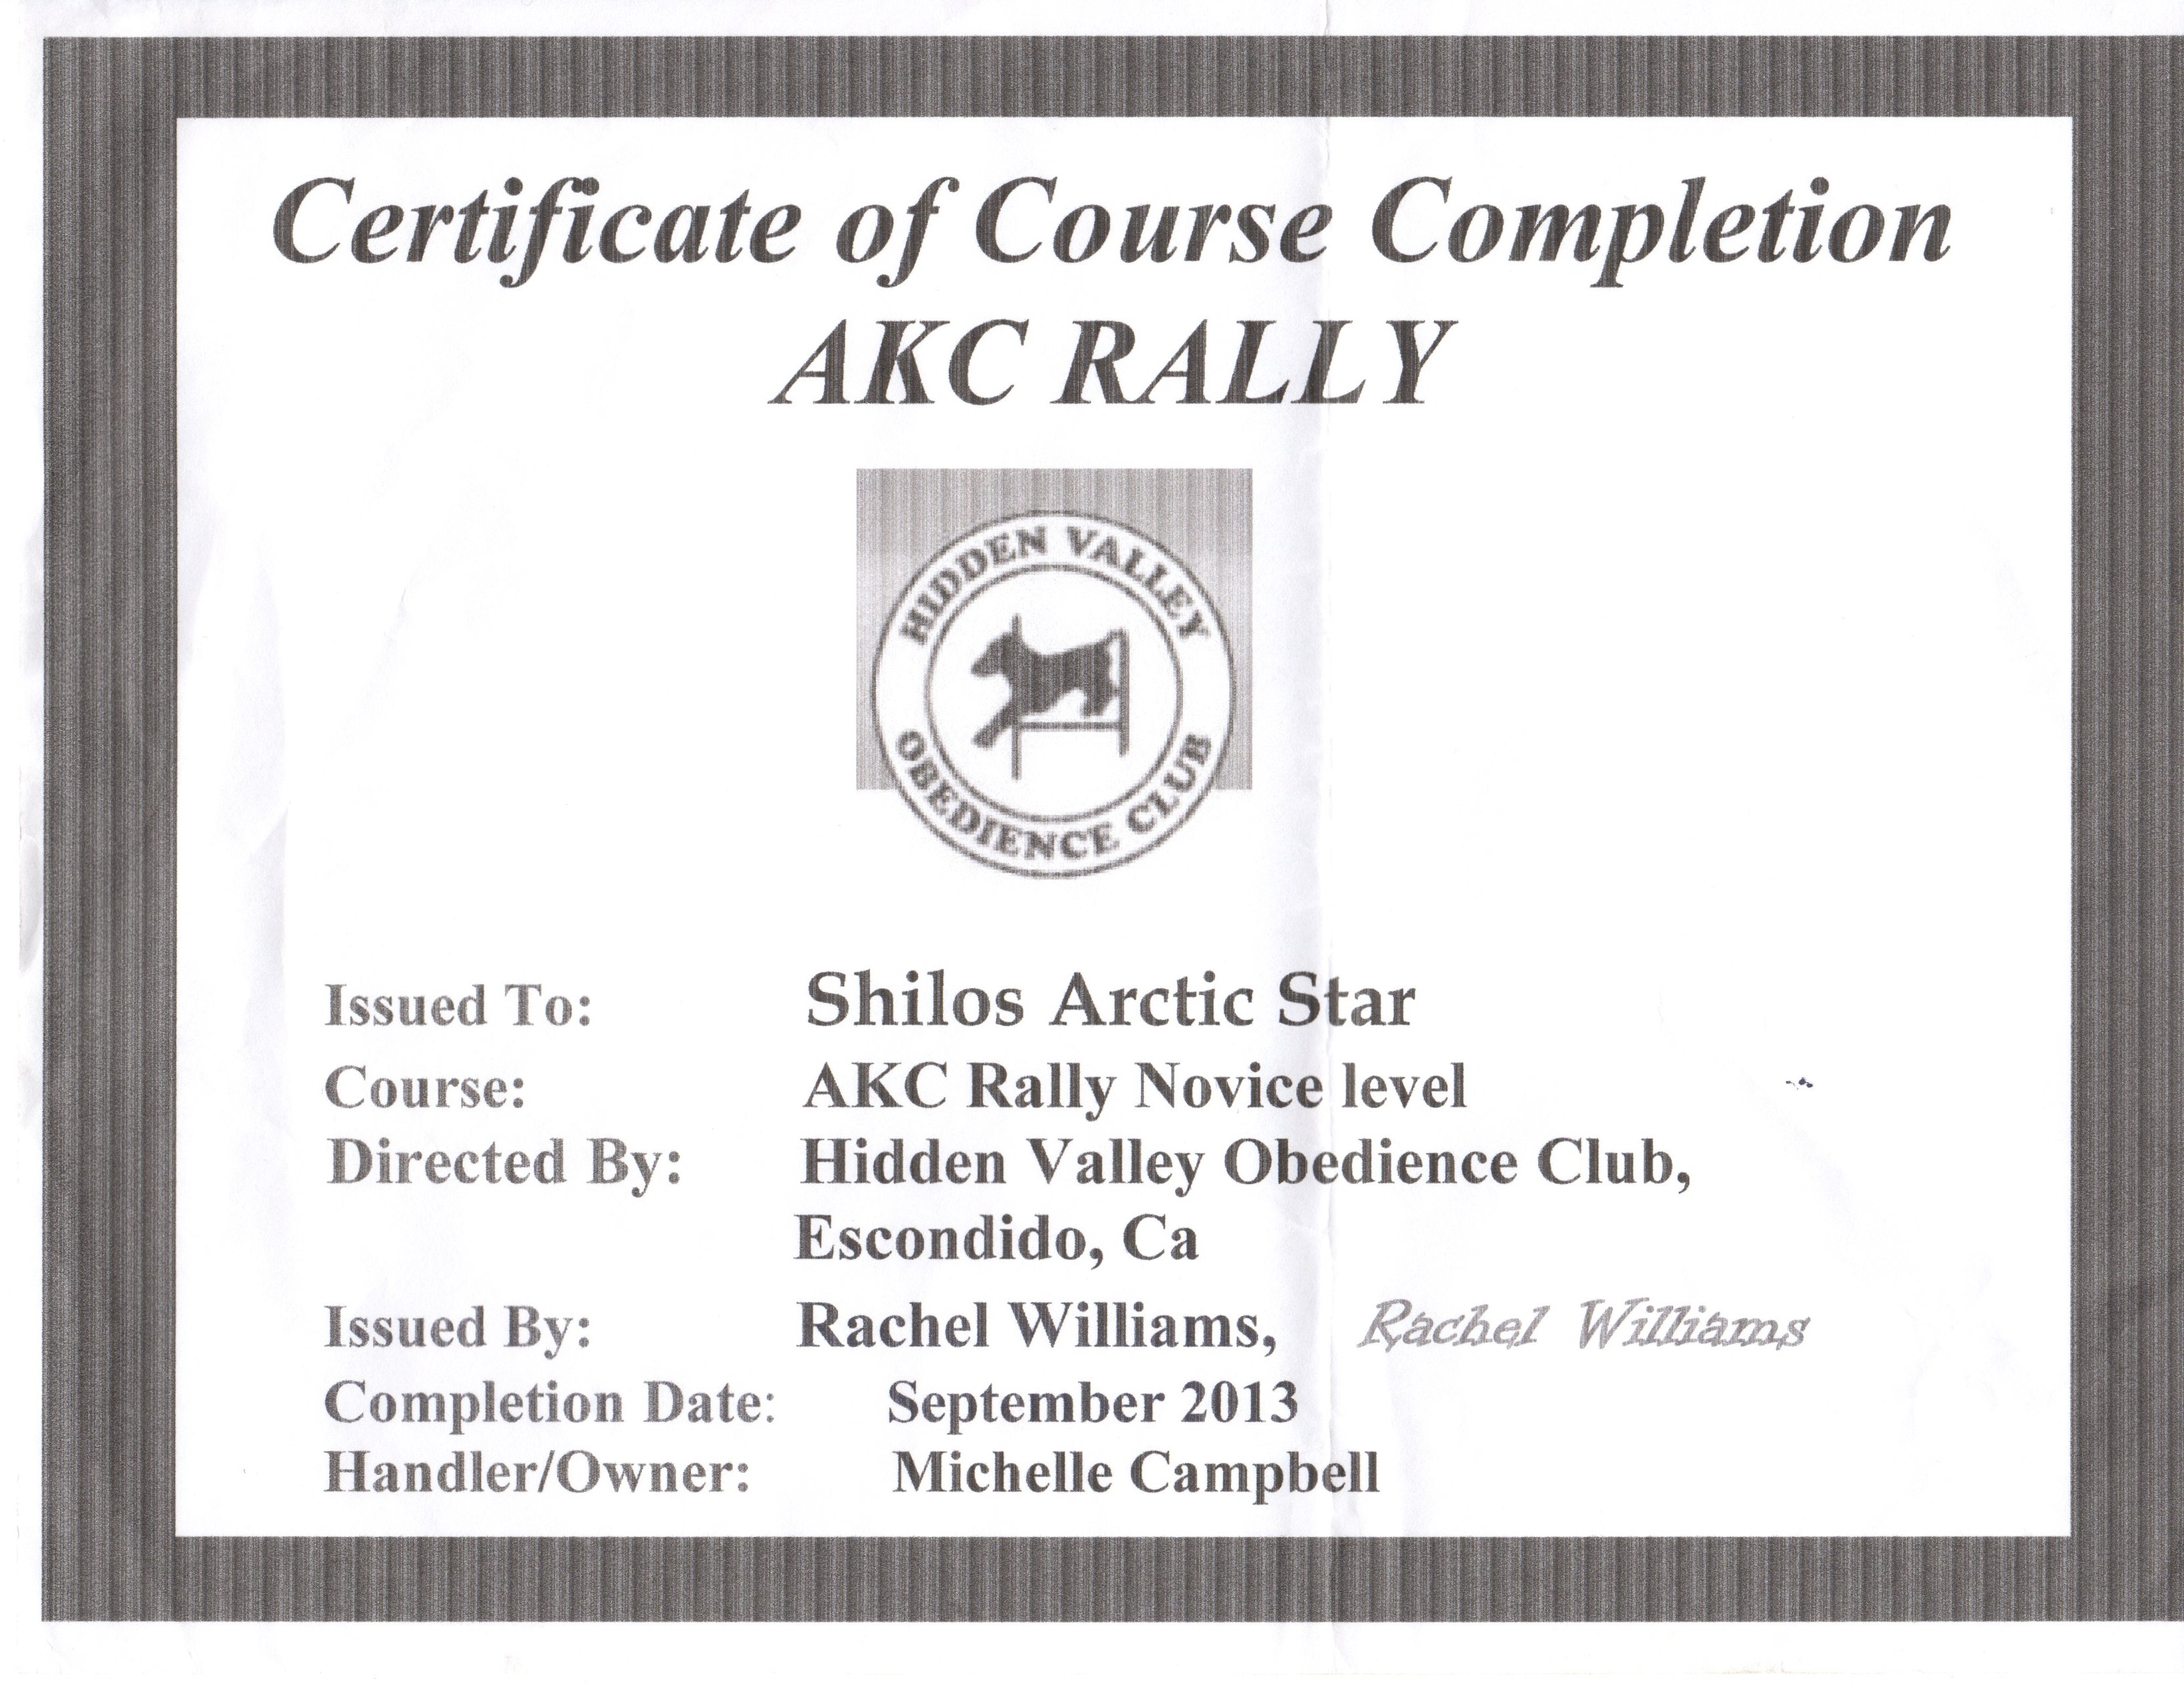 Pedigree and Certifications   Shilo's Arctic Star